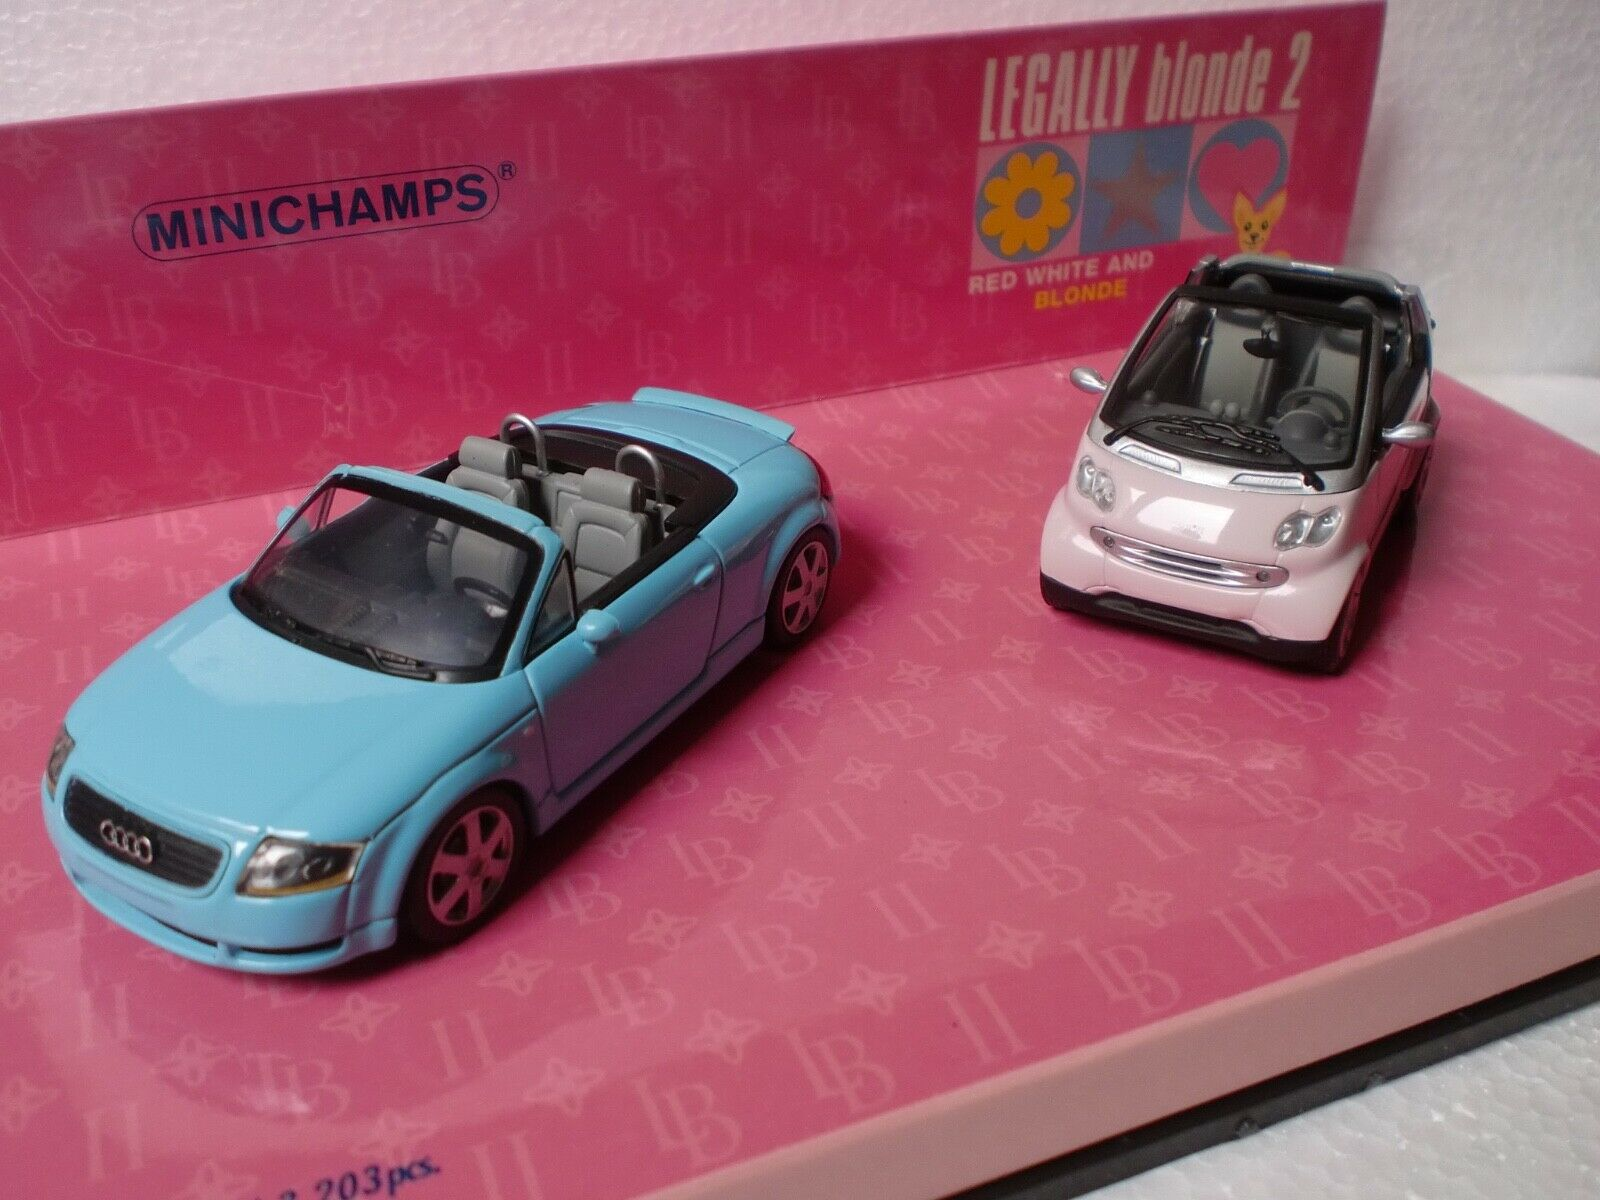 MINICHAMPS 1 43 - SET LEGALLY BLONDE 2I TT CABRIO + SMART CABRIO 402 173900